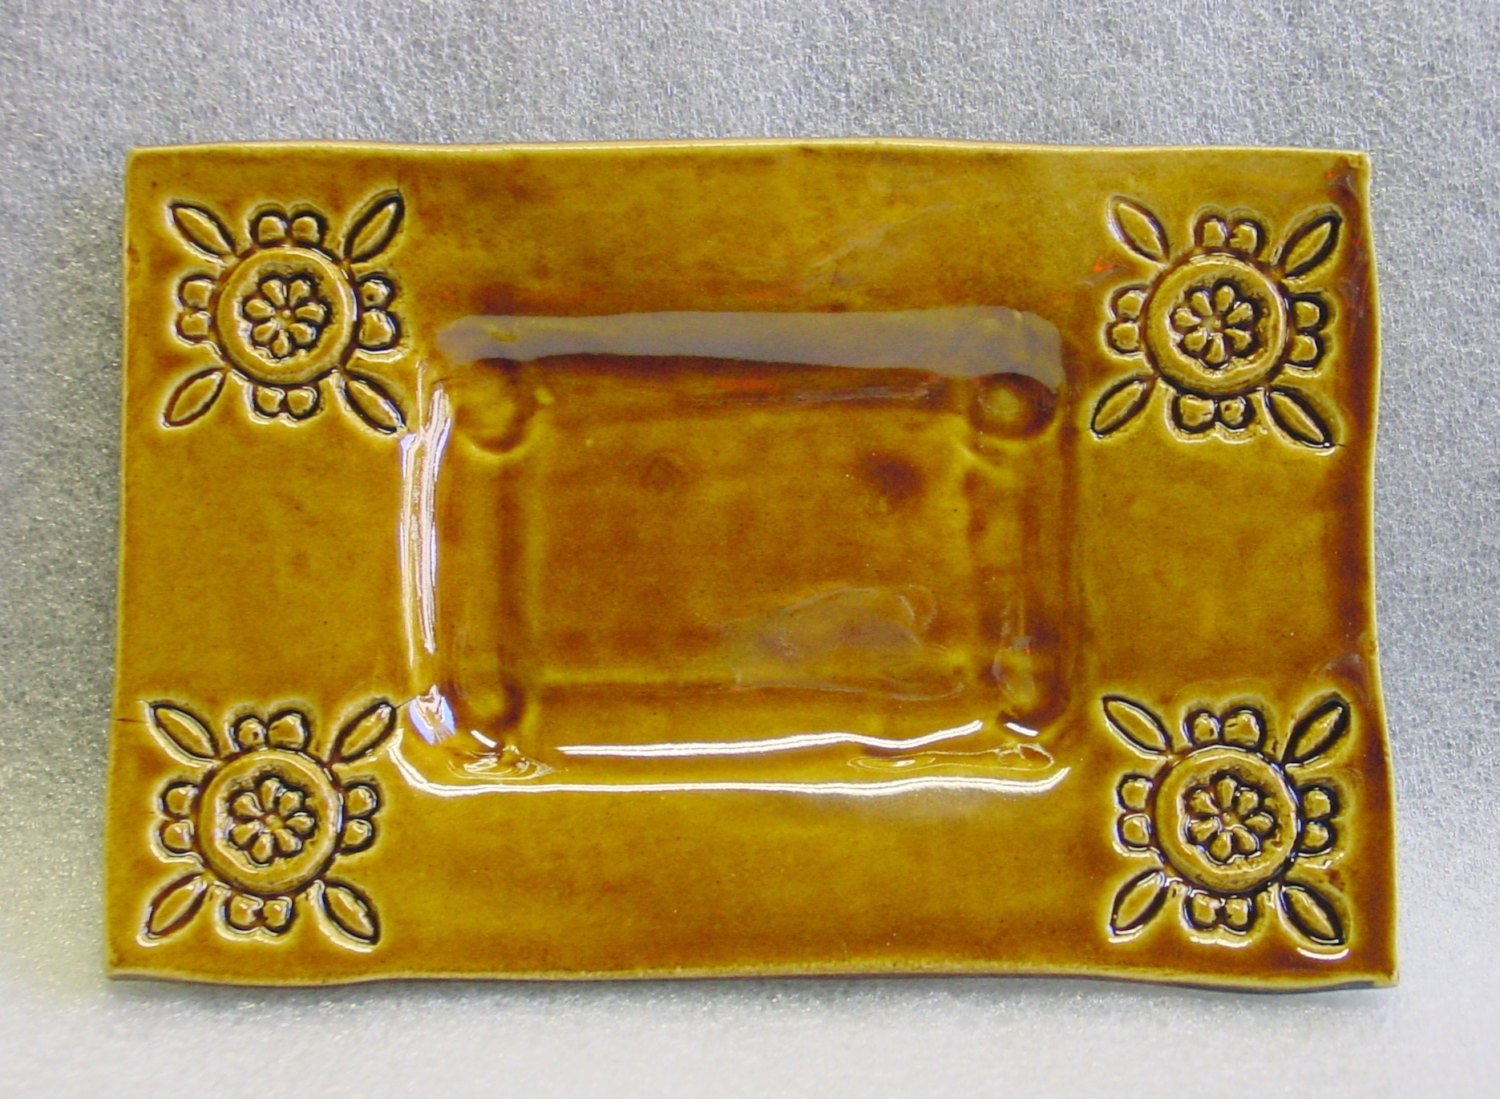 Amber Pottery Sushi Plate, Trivet Tray Soap Dish  with Imprinted Design